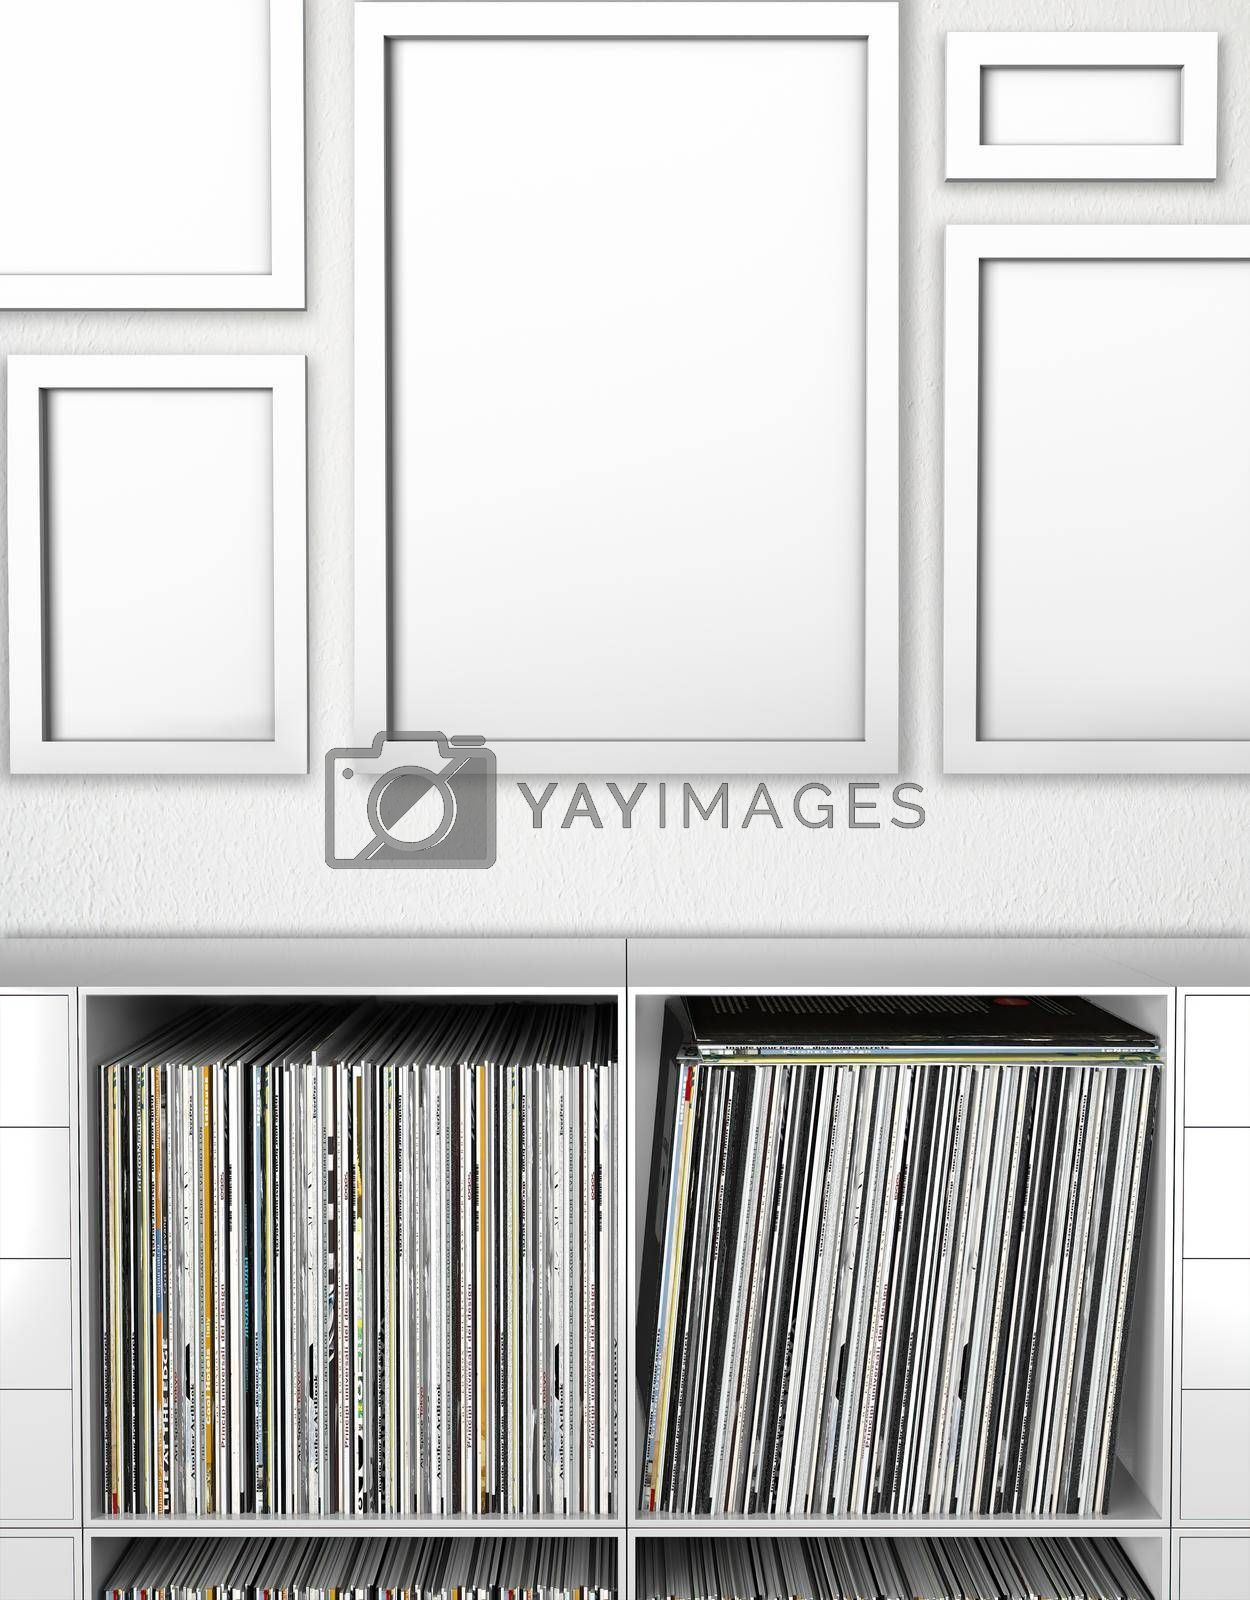 Photorealistic Poster Mockup Frames With Empty Bookcase 5mm 5 Frame